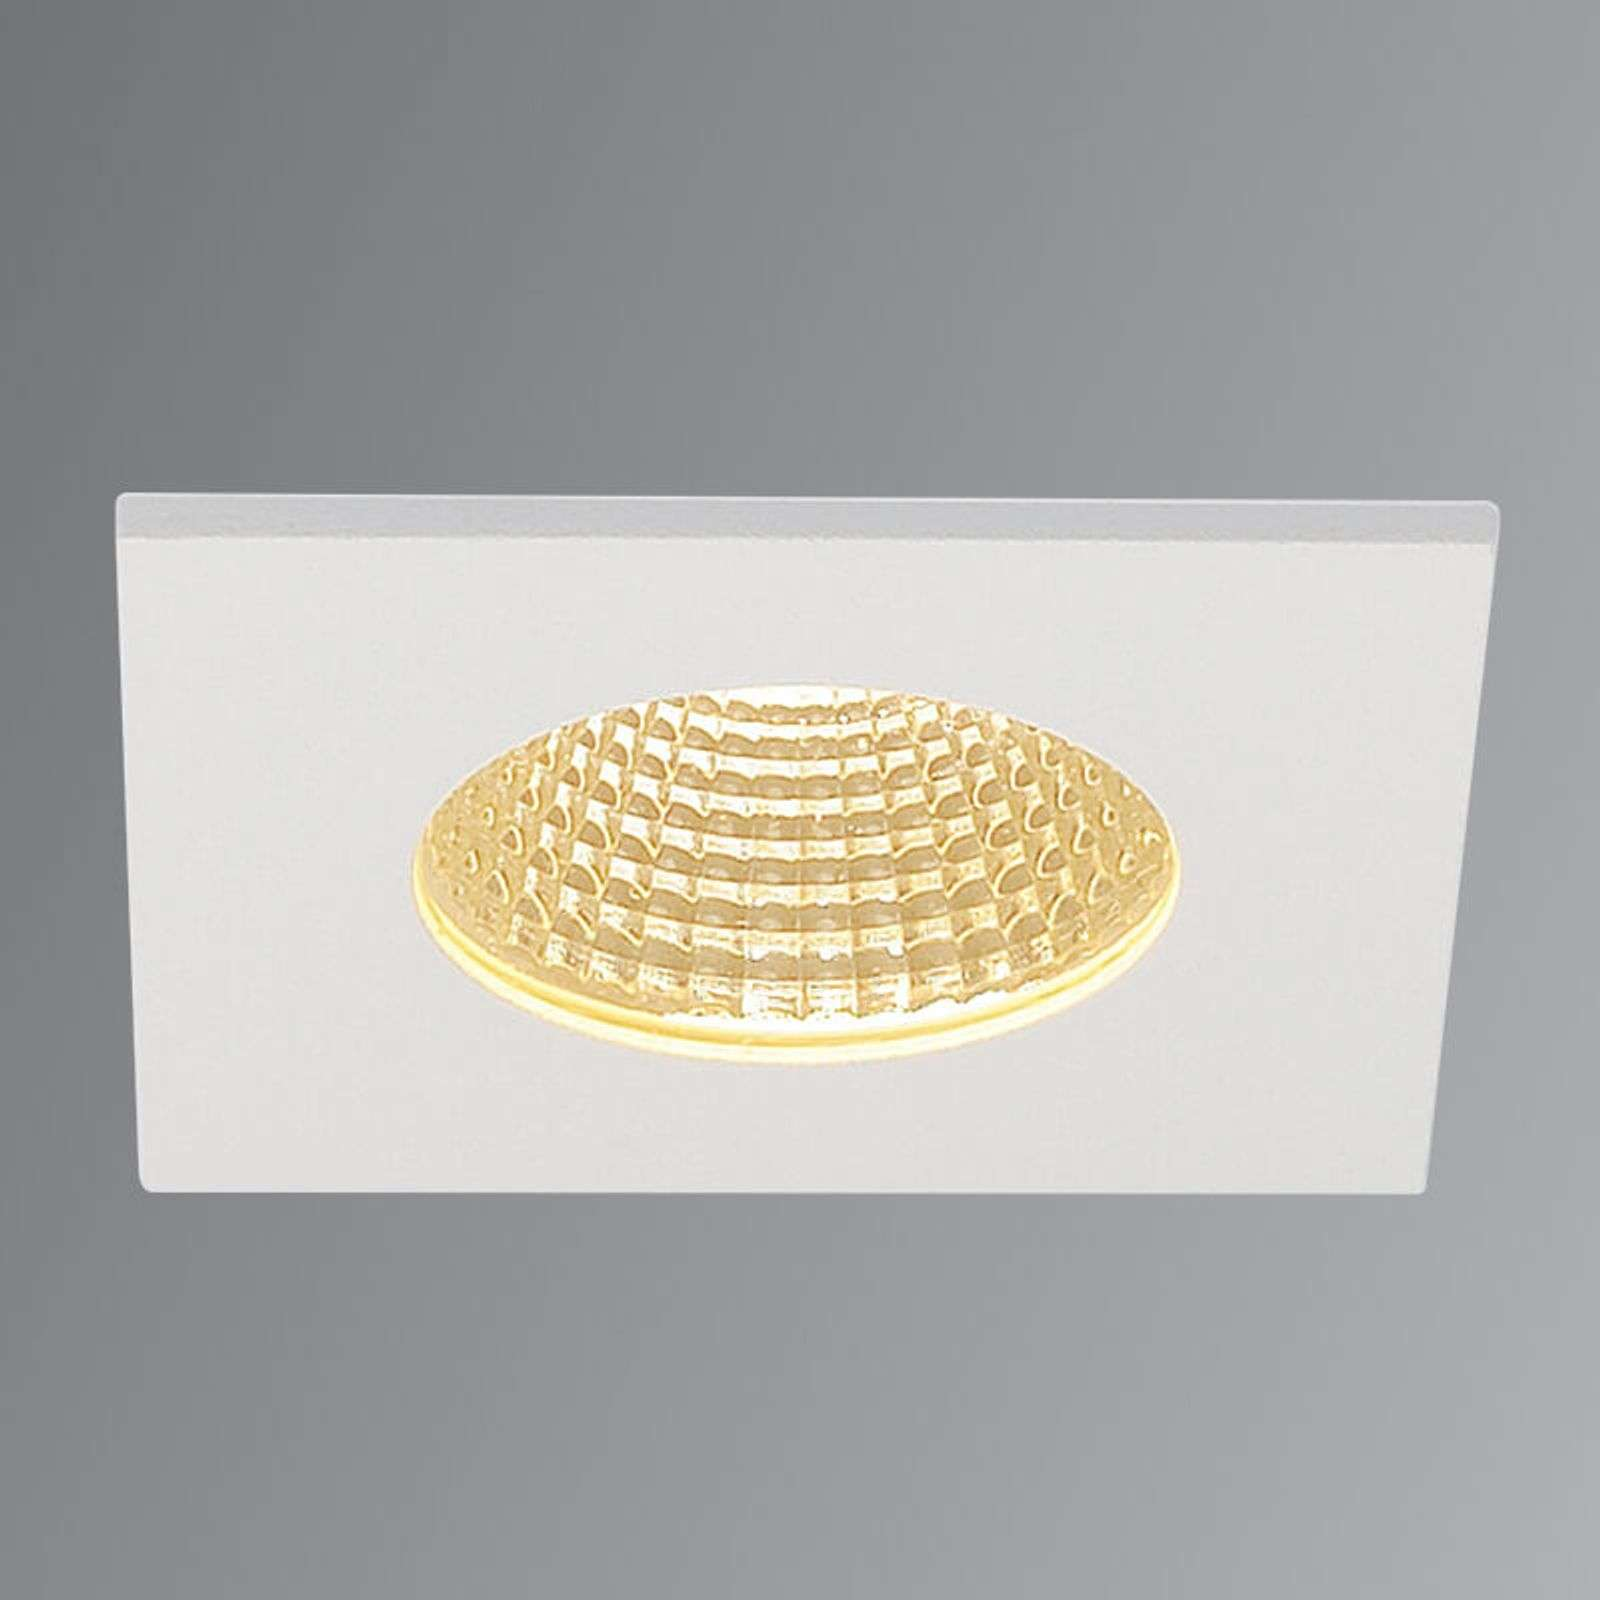 Downlight LED Patta-I bianco satinato